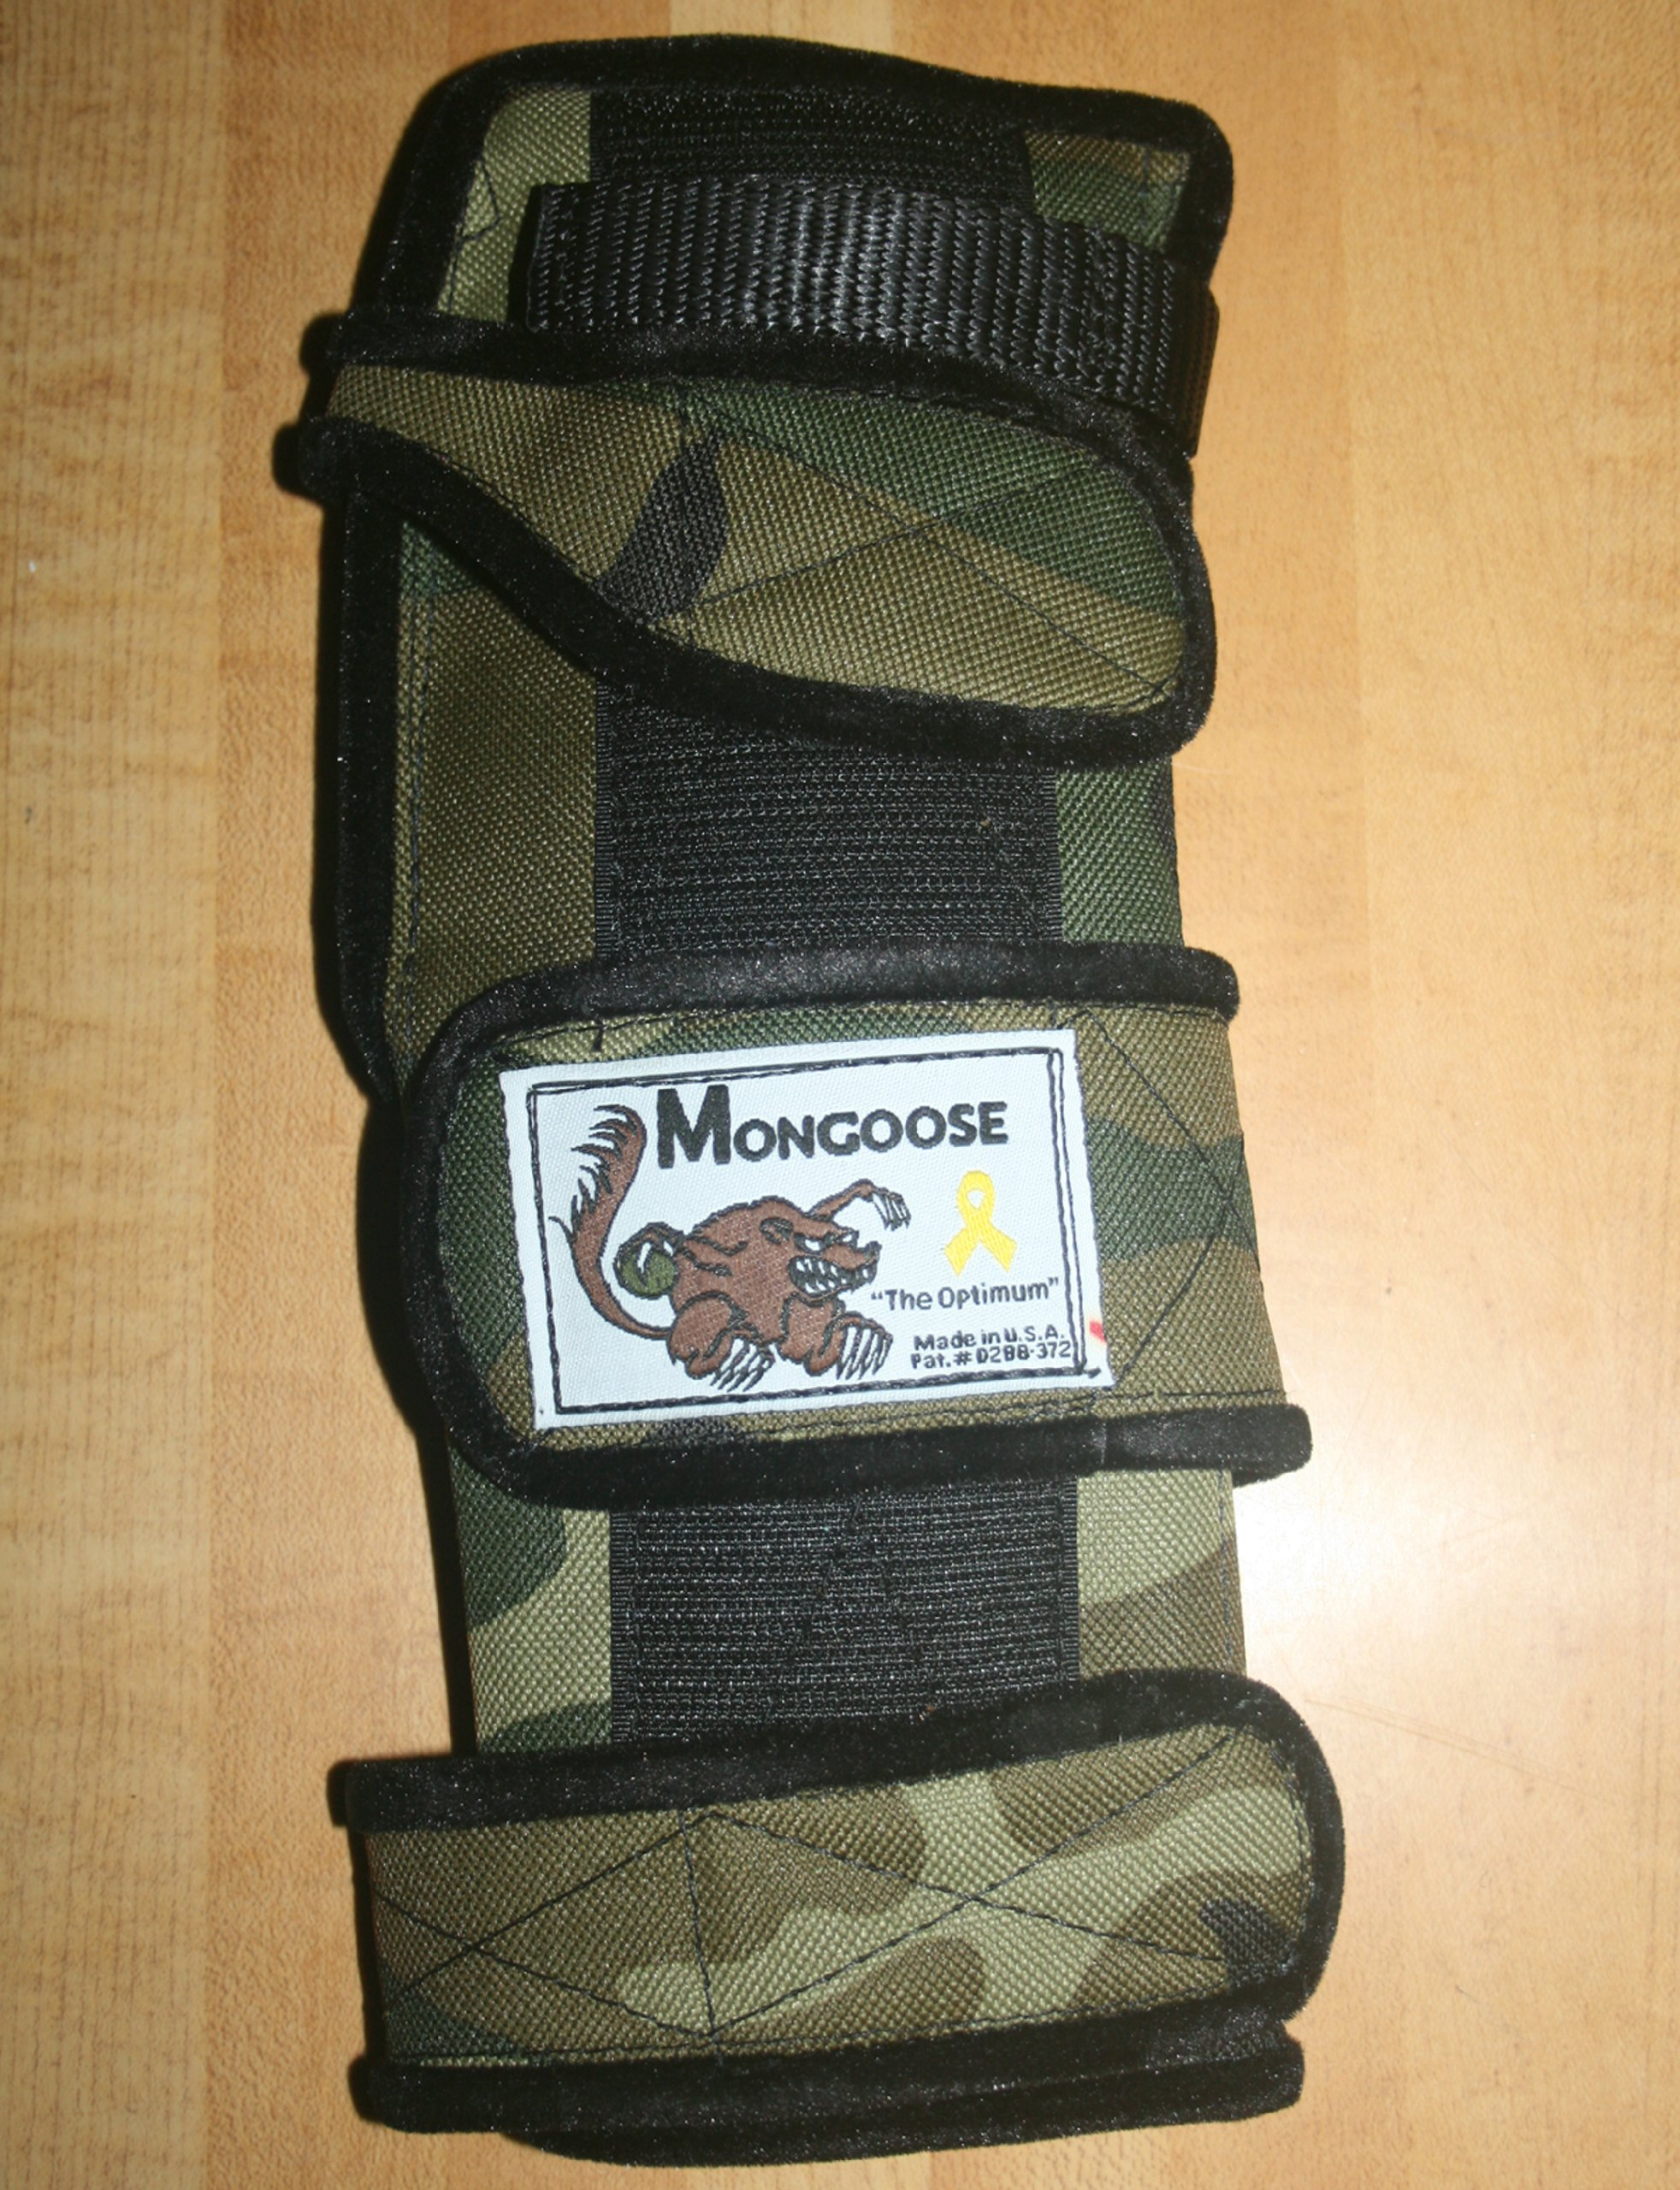 Mongoose ''Optimum bowling Wrist Support Left hand, Small, Camo by Mongoose